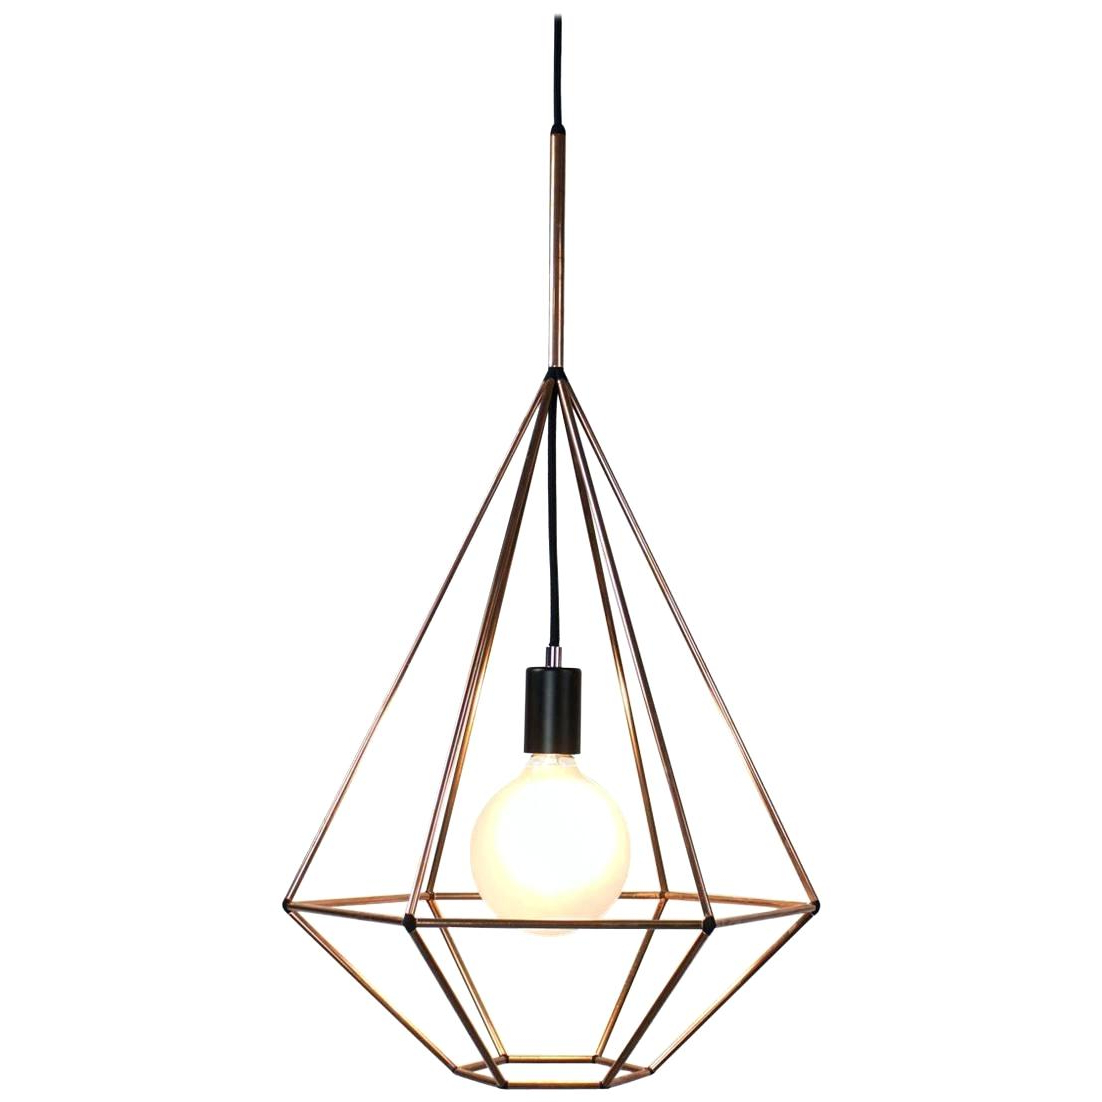 Widely Used Nisbet 6 Light Lantern Geometric Pendants Regarding Geometric Pendant Light – Soccerflash (View 25 of 25)